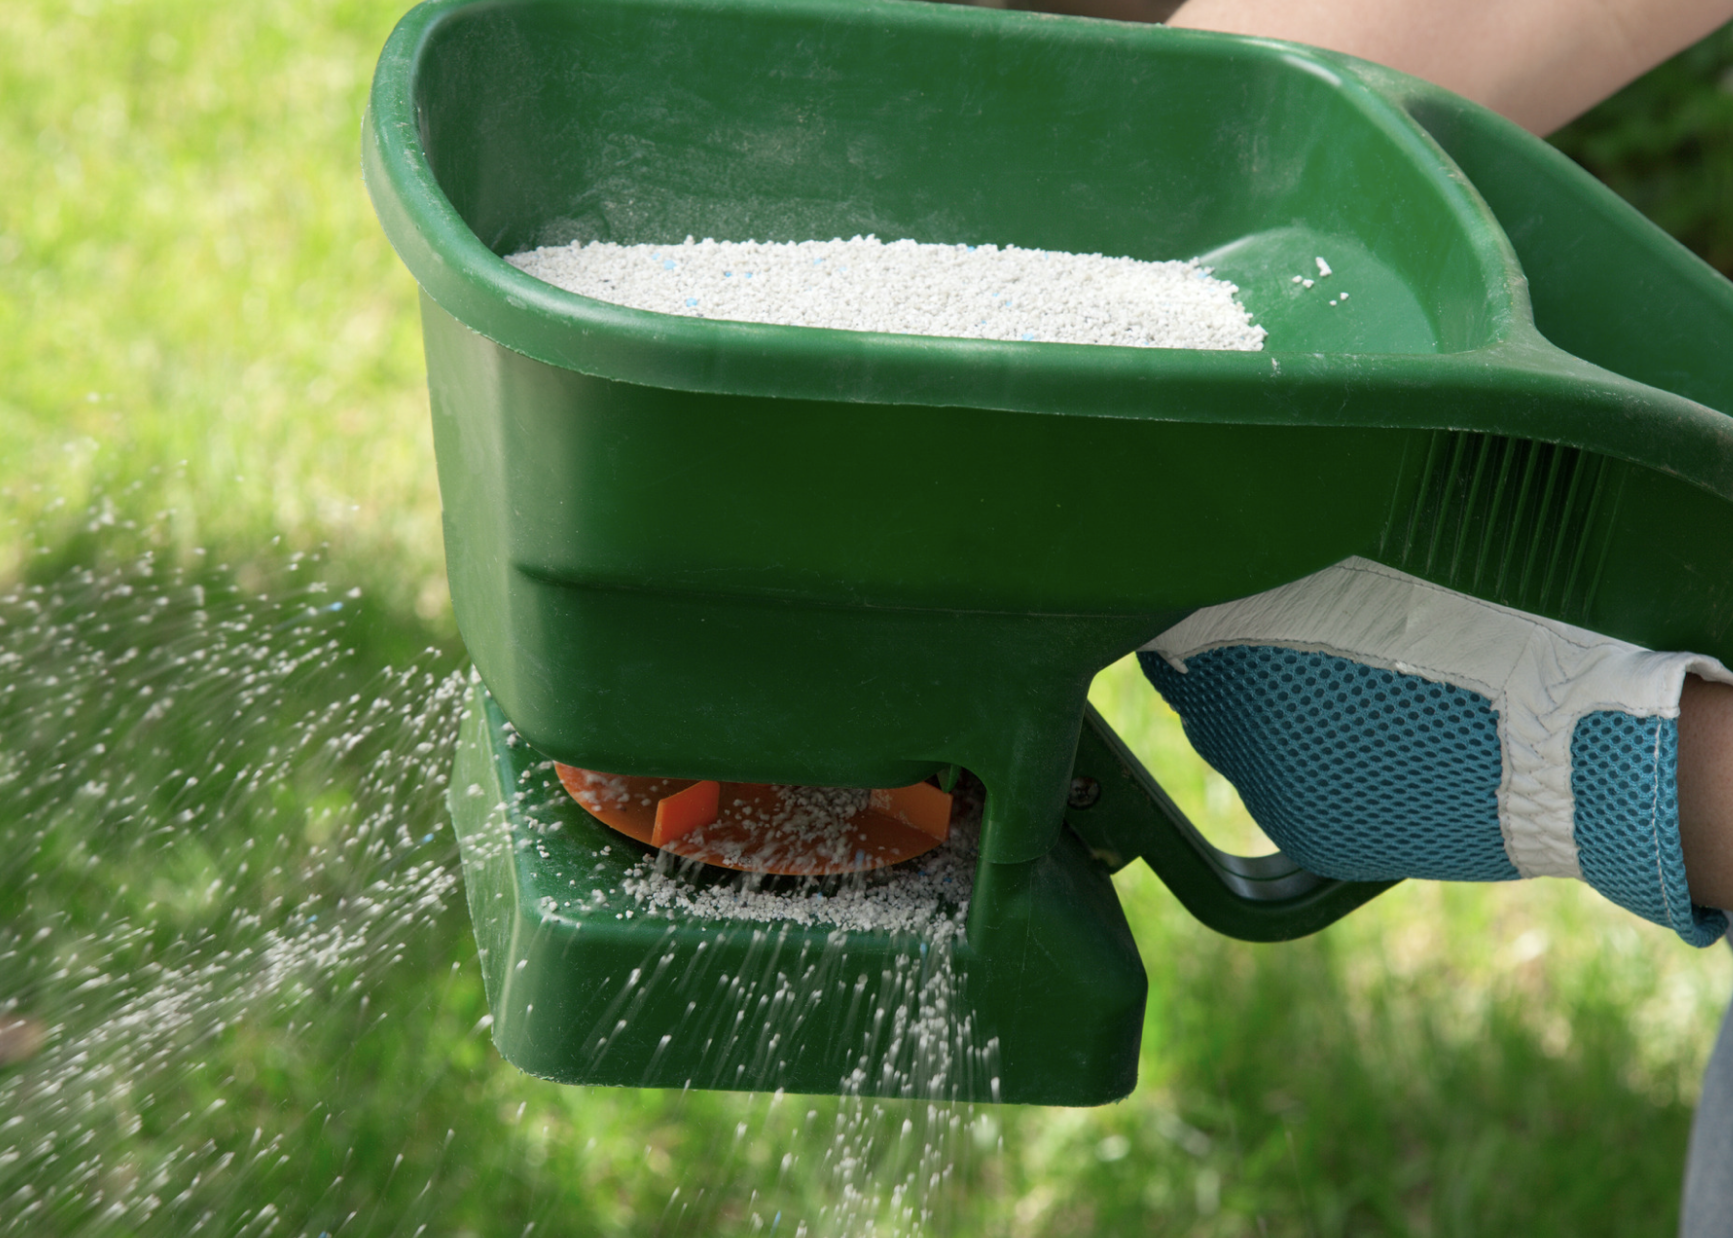 A person using a green manual fertilizer.